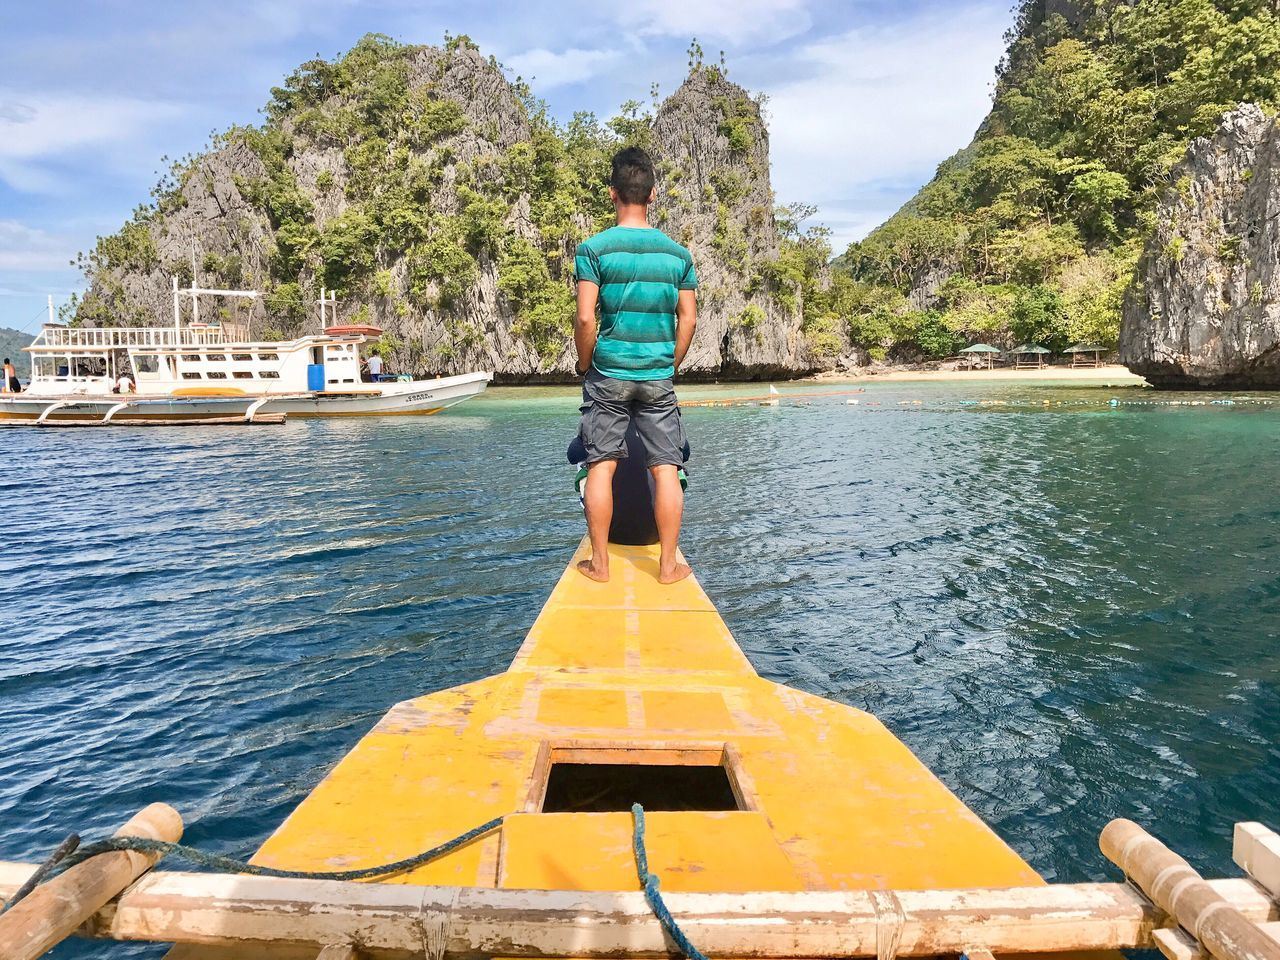 Our guide took us to a great spot. Rear View Man Captain Adventure Island Vacation South East Asia Lagoon Navigate Ahead In Front Forward One Person Full Length Sail Outdoors Sky Nautical Vessel Outrigger Vacation People Adult Adults Only Day Nature